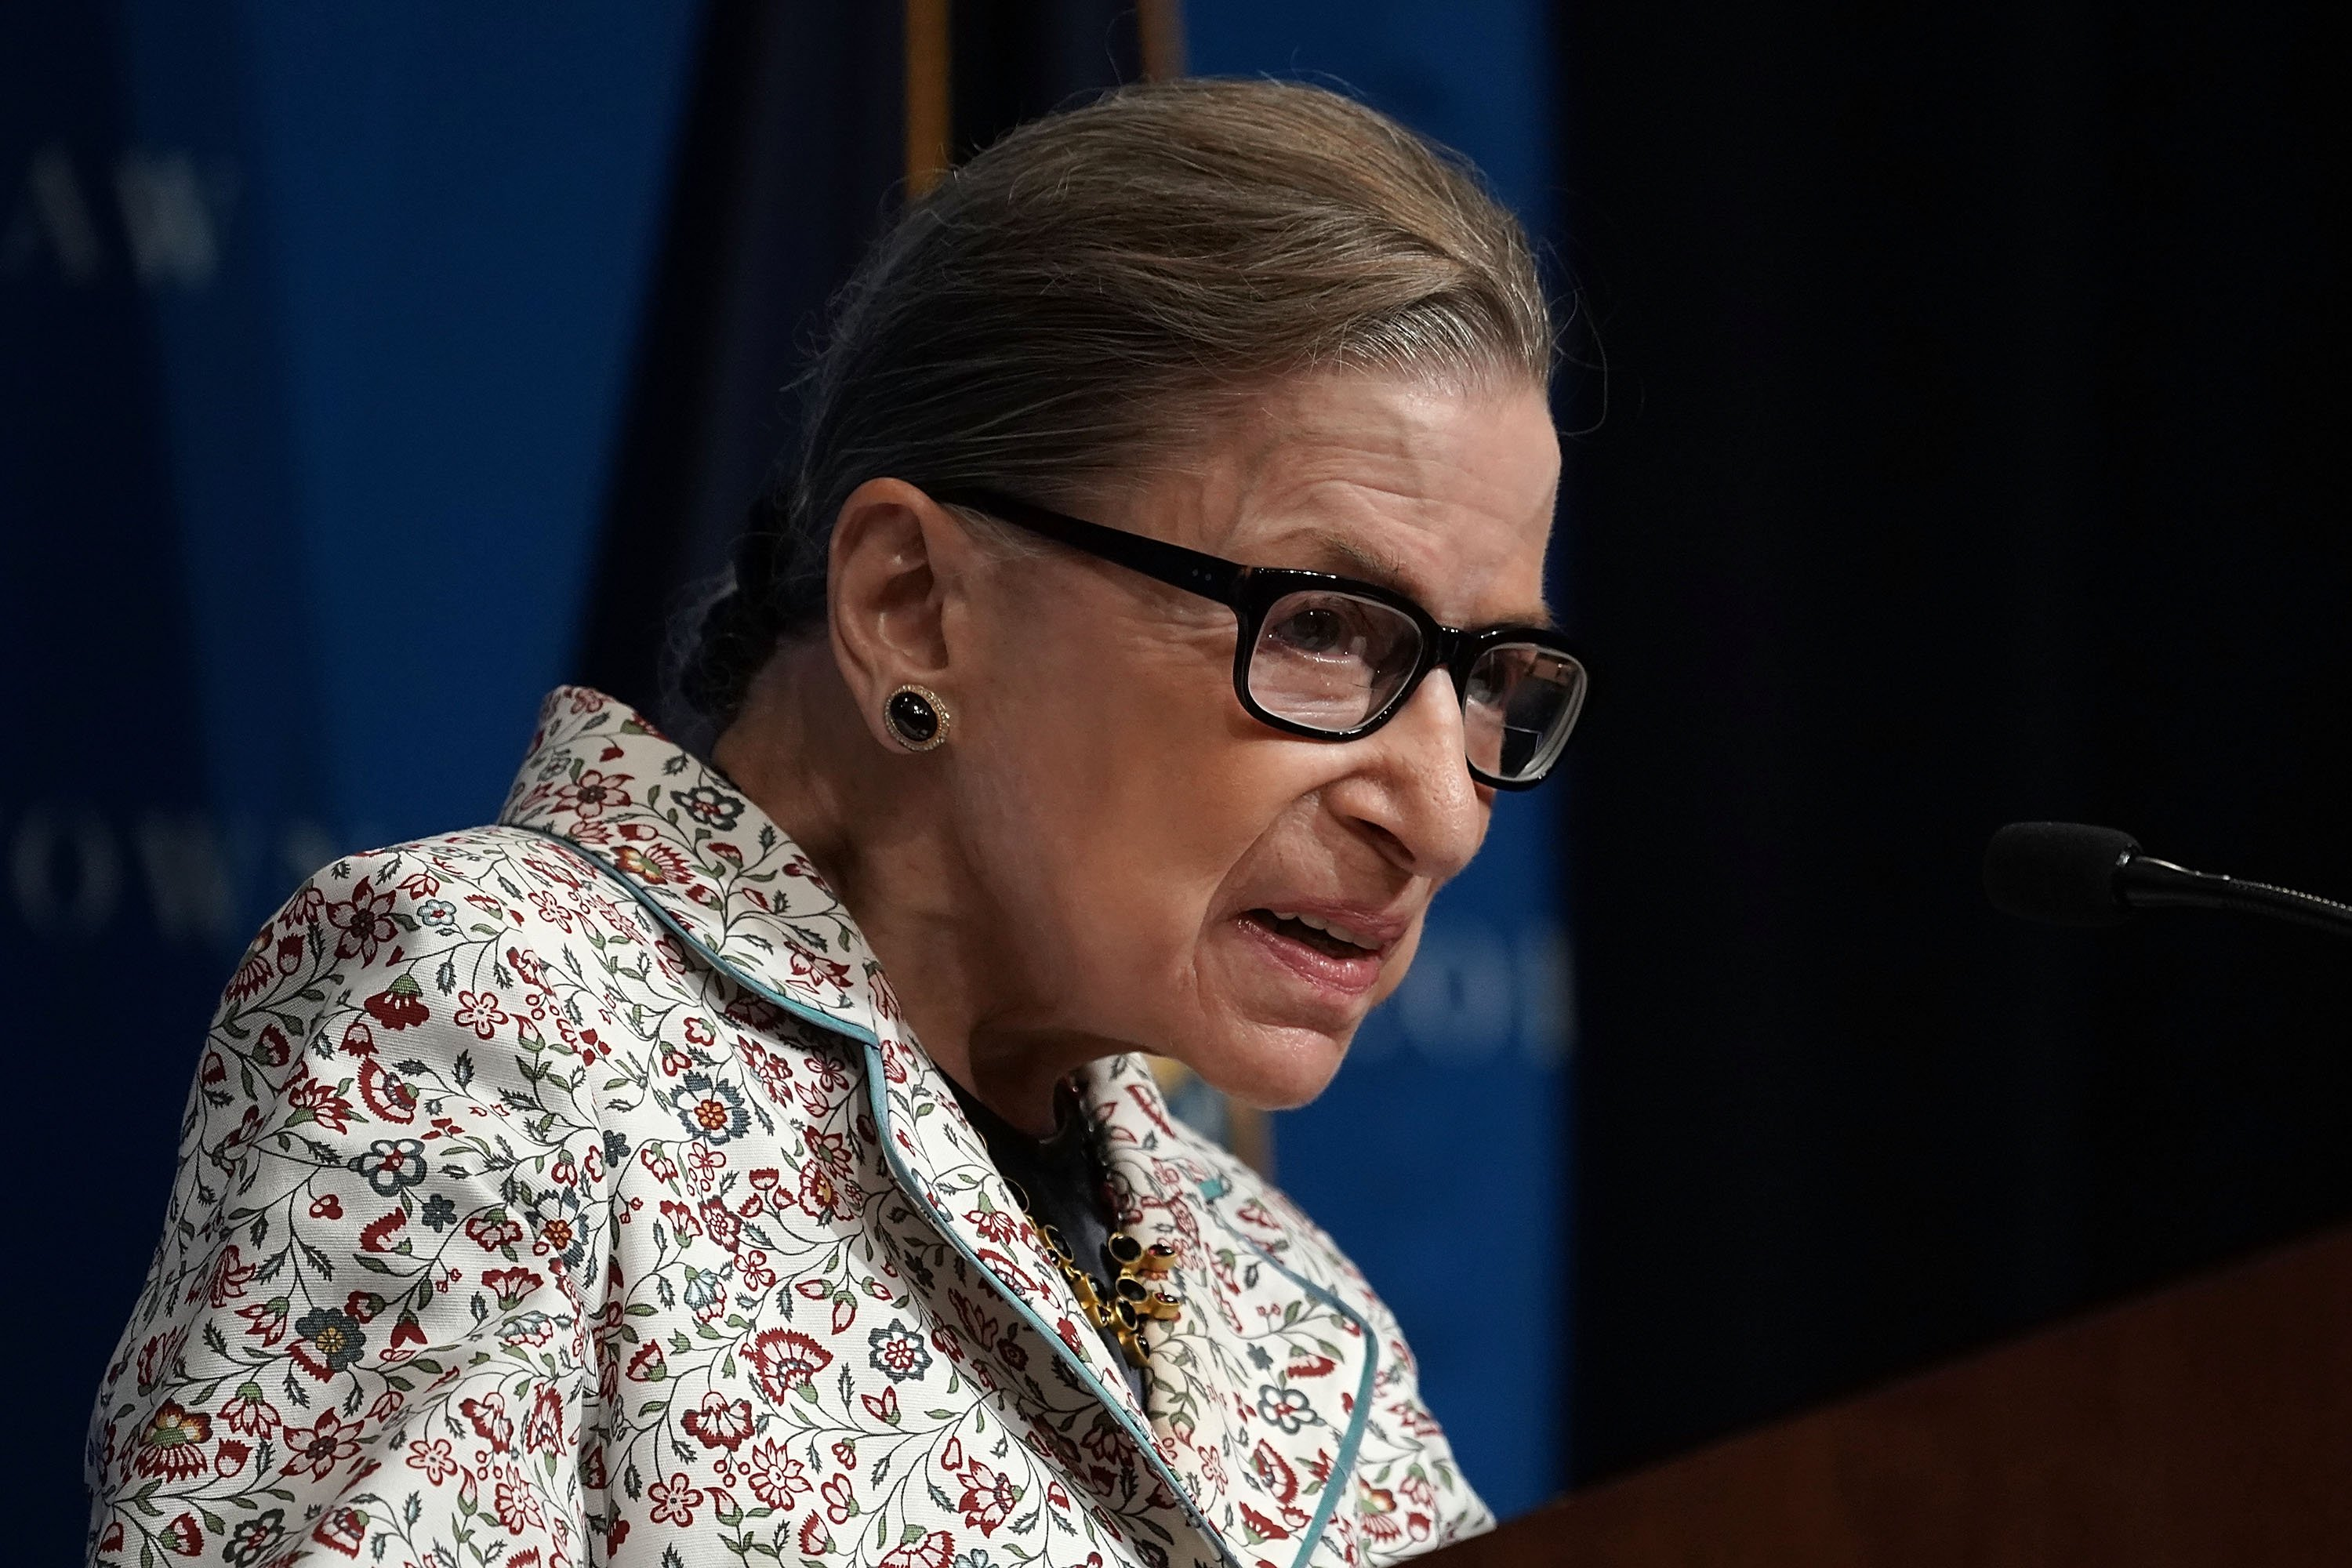 Supreme Court Justice Ruth Bader Ginsburg participates in a lecture September 26, 2018 at Georgetown University Law Center in Washington, DC | Photo: GettyImages